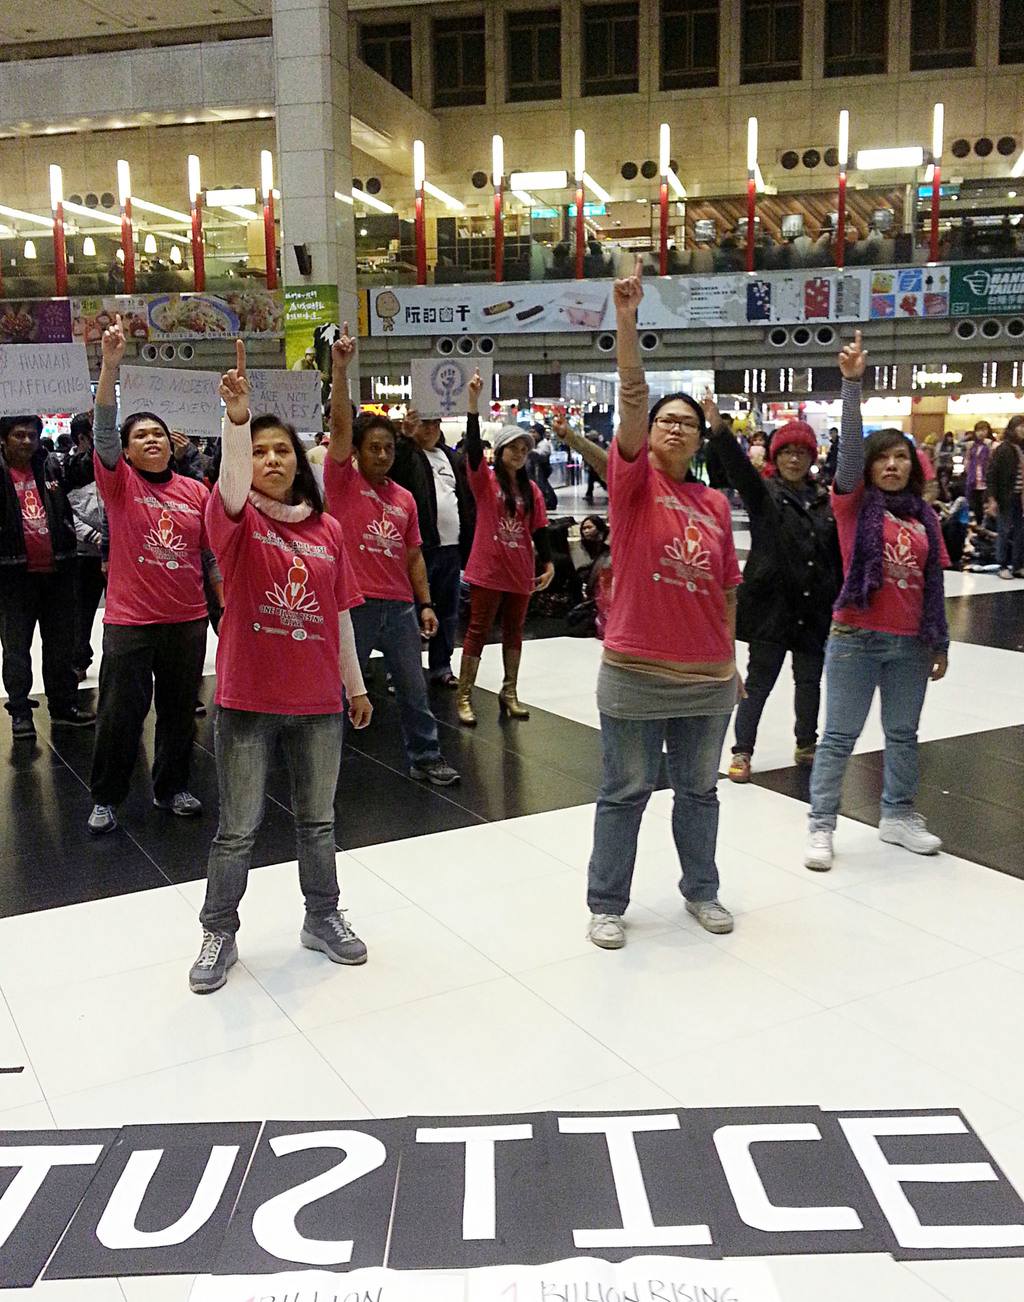 An event was held in 2014 to call for justice for foreign caregivers and migrant workers.